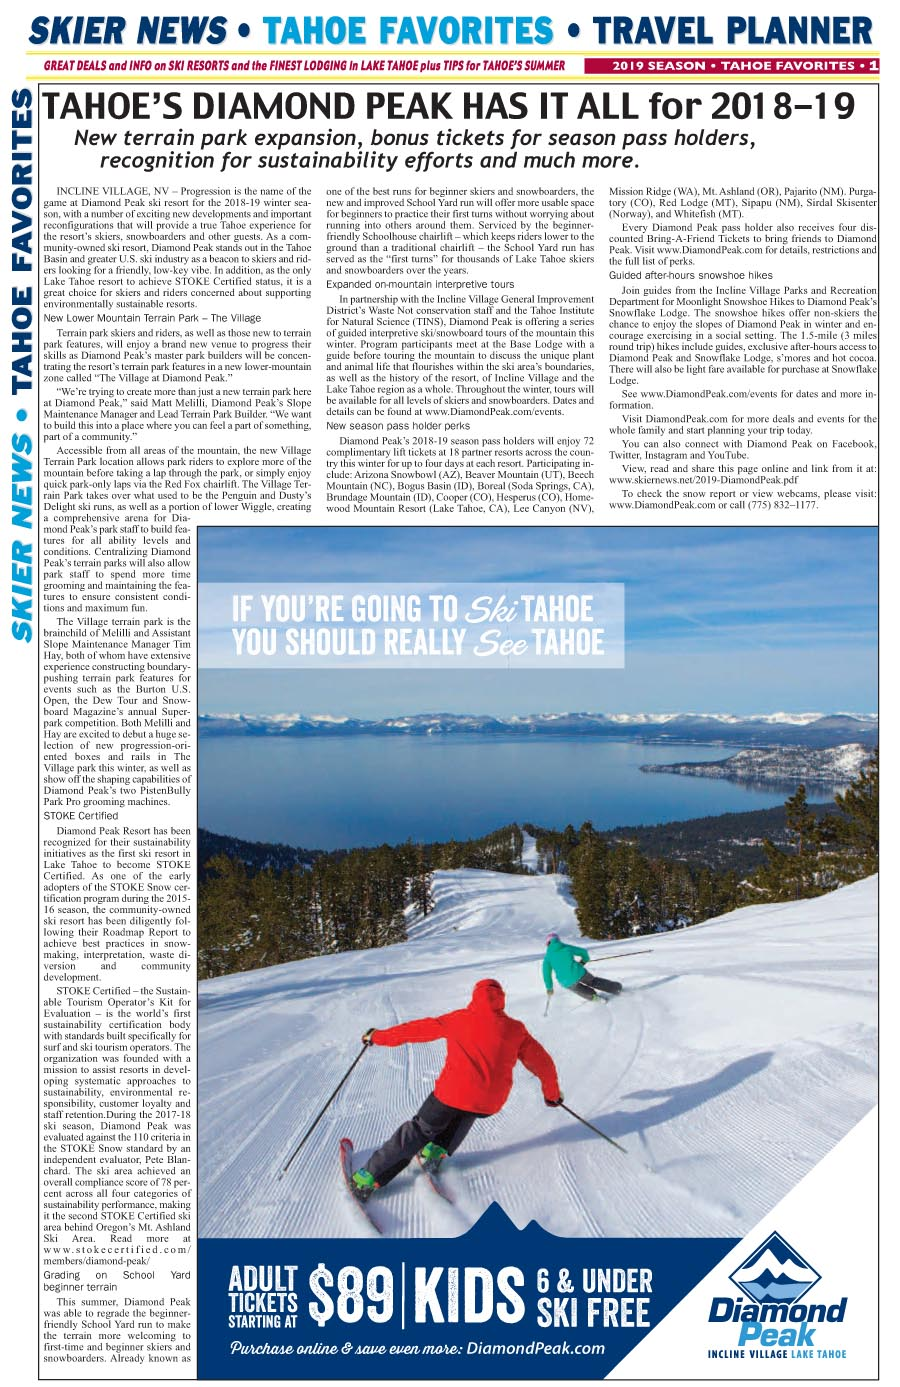 Click to link to Tahoe info